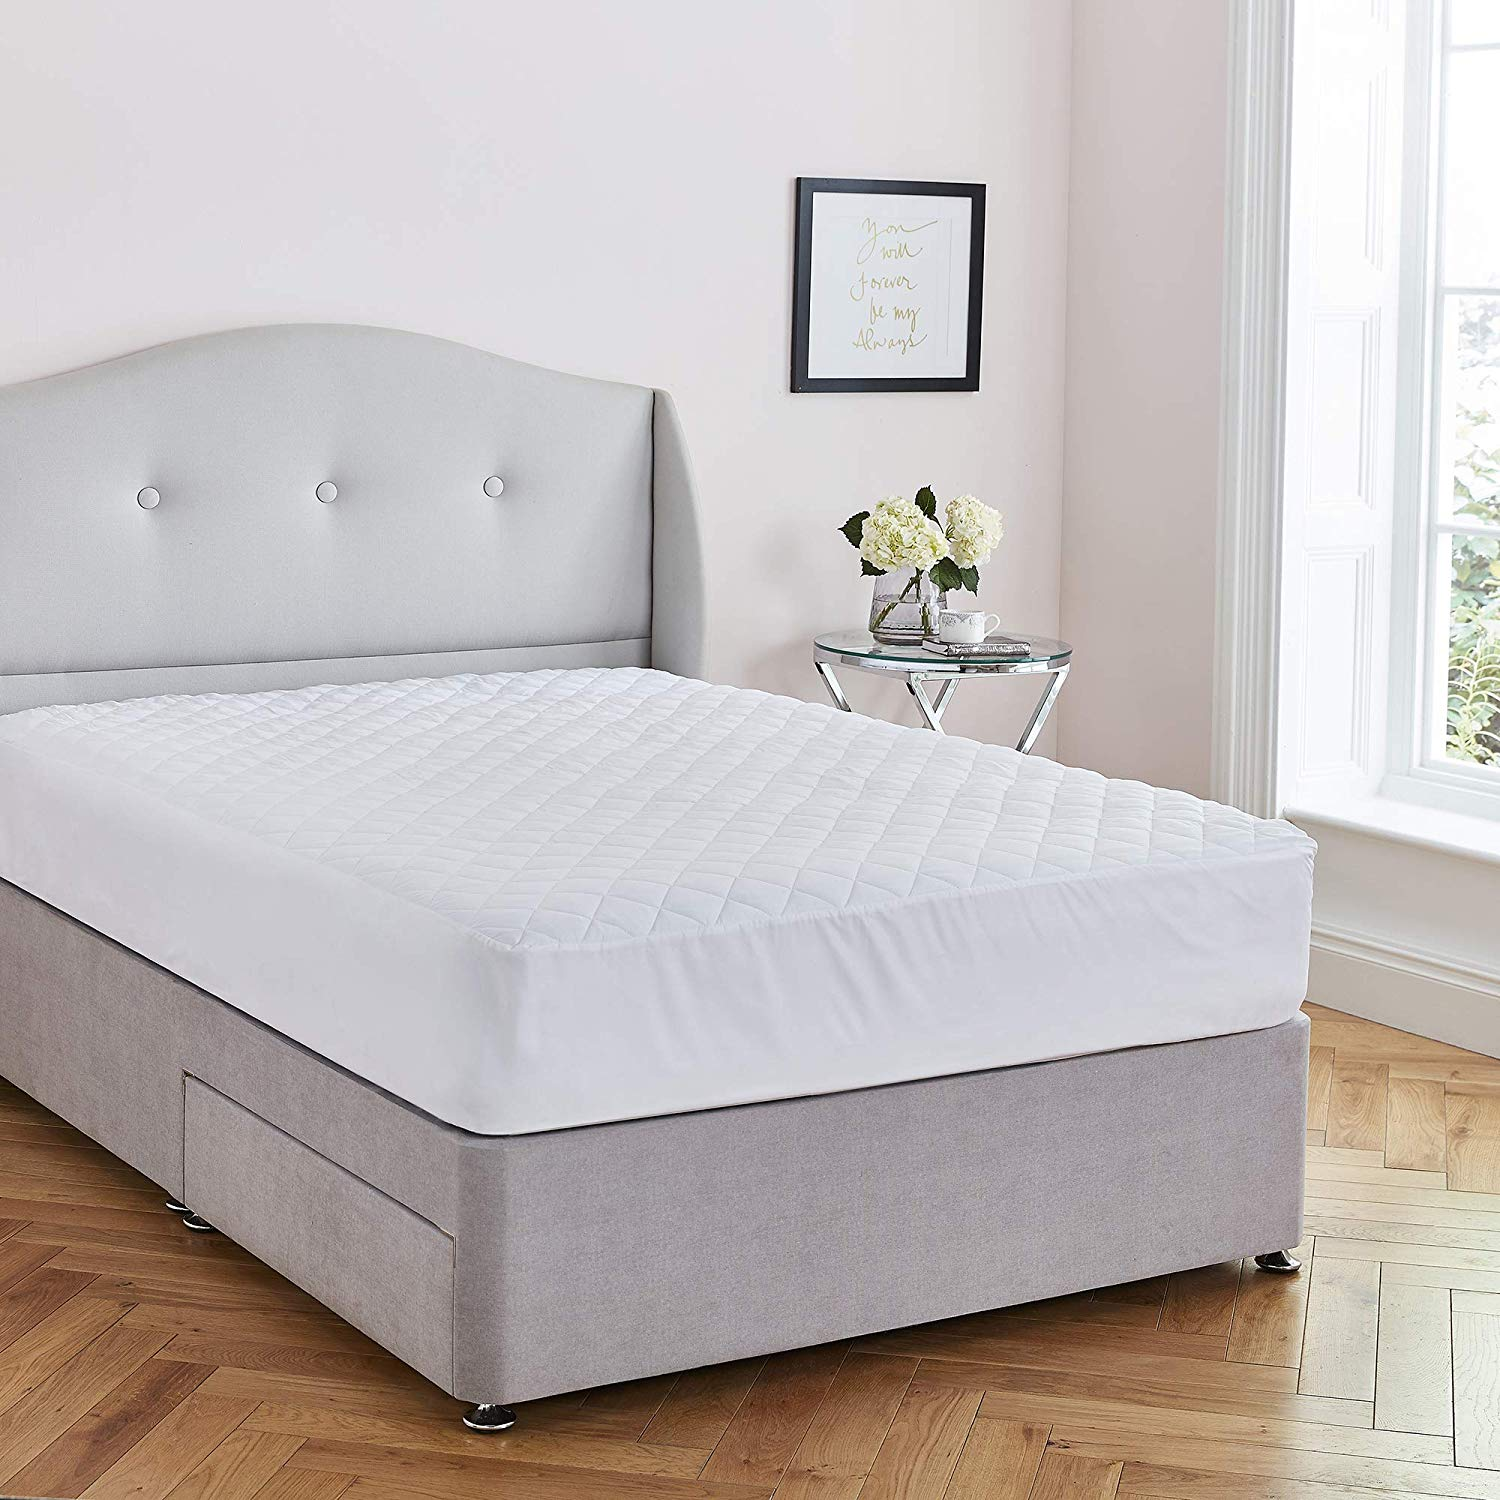 Highliving Terry Towelling Waterproof And Breathable Mattress Protector Bunk Bed All Sizes Fitted Sheet Bedding Linens Home Kitchen